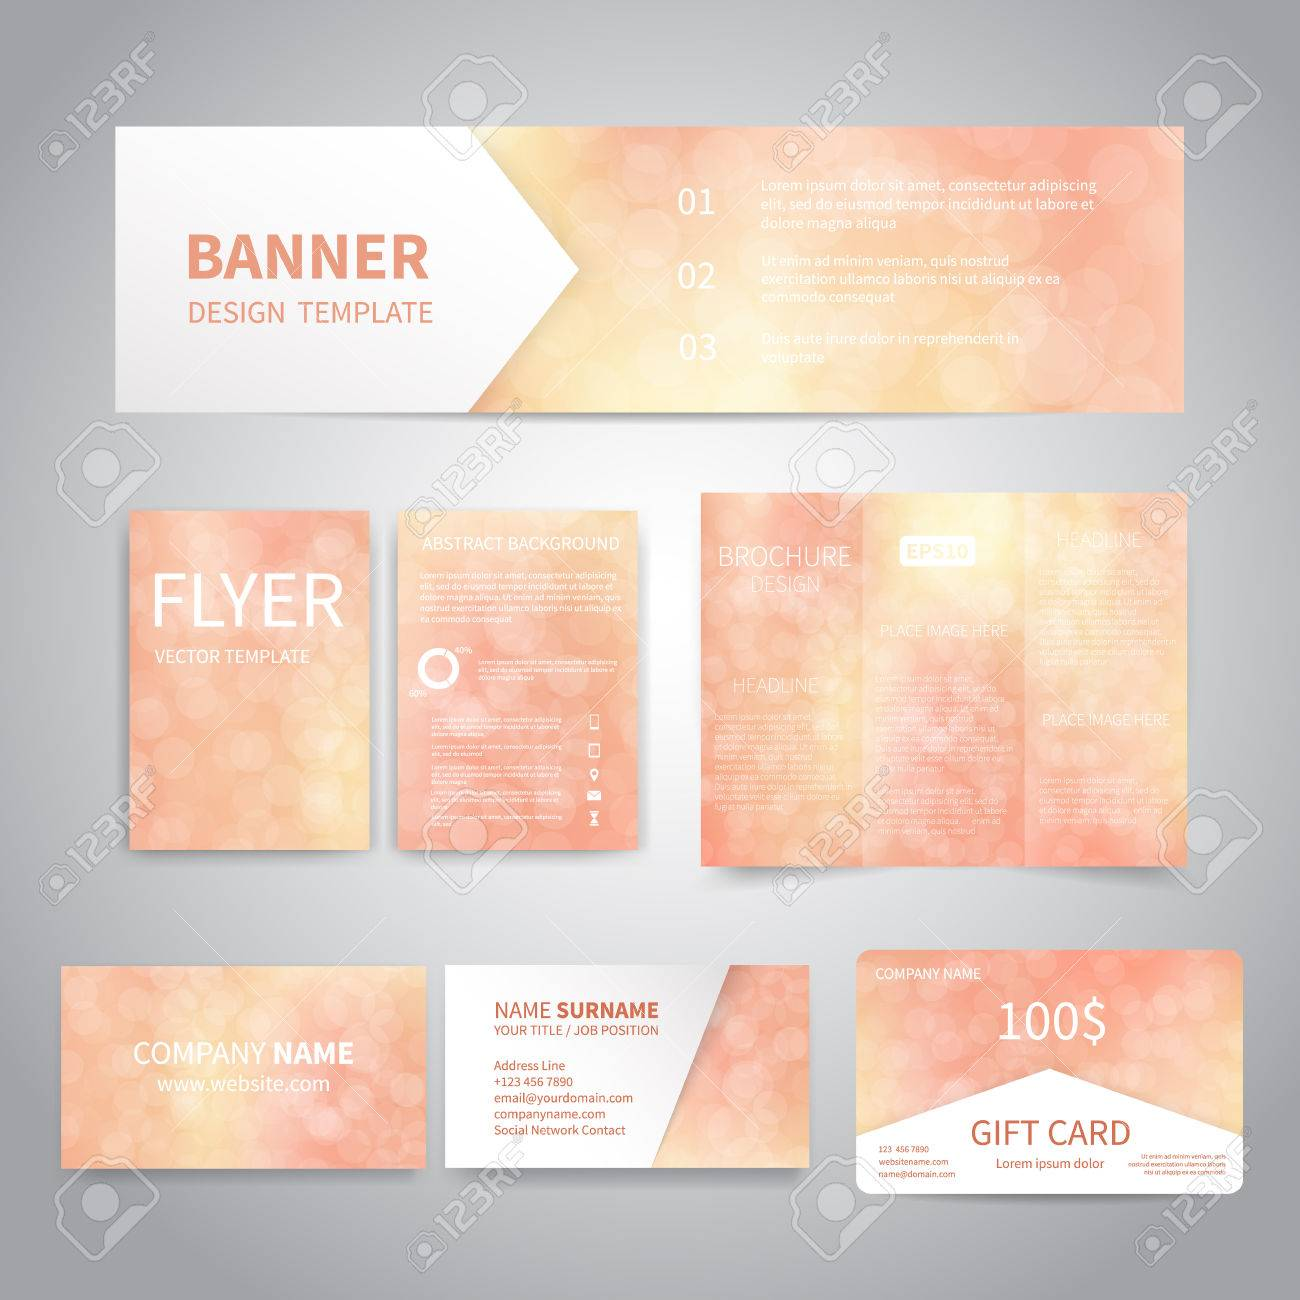 Banner flyers brochure business cards gift card design templates banner flyers brochure business cards gift card design templates set with beautiful colourmoves Image collections